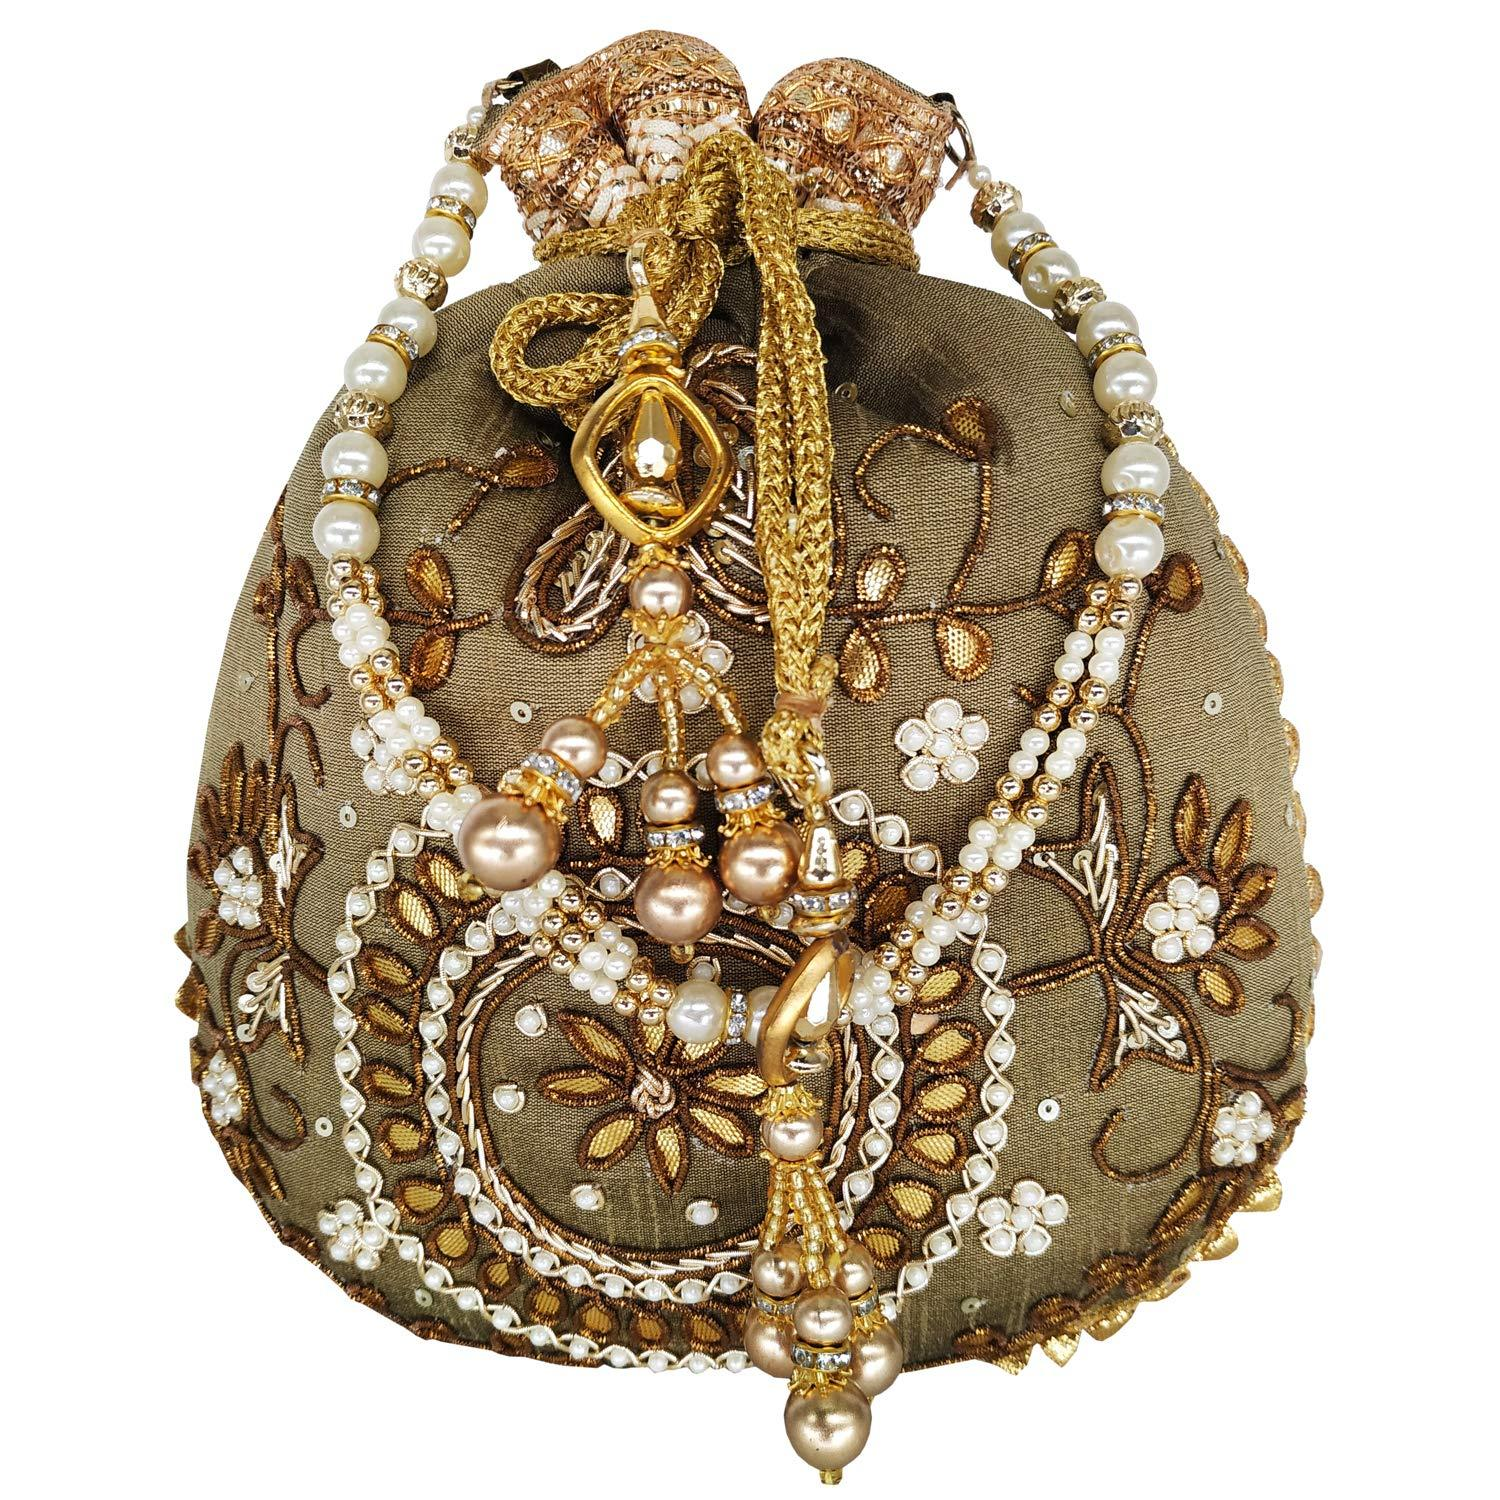 Beads and Pearls Embroidery and Thread work Designer Batwa Potli - Bagaholics Gift